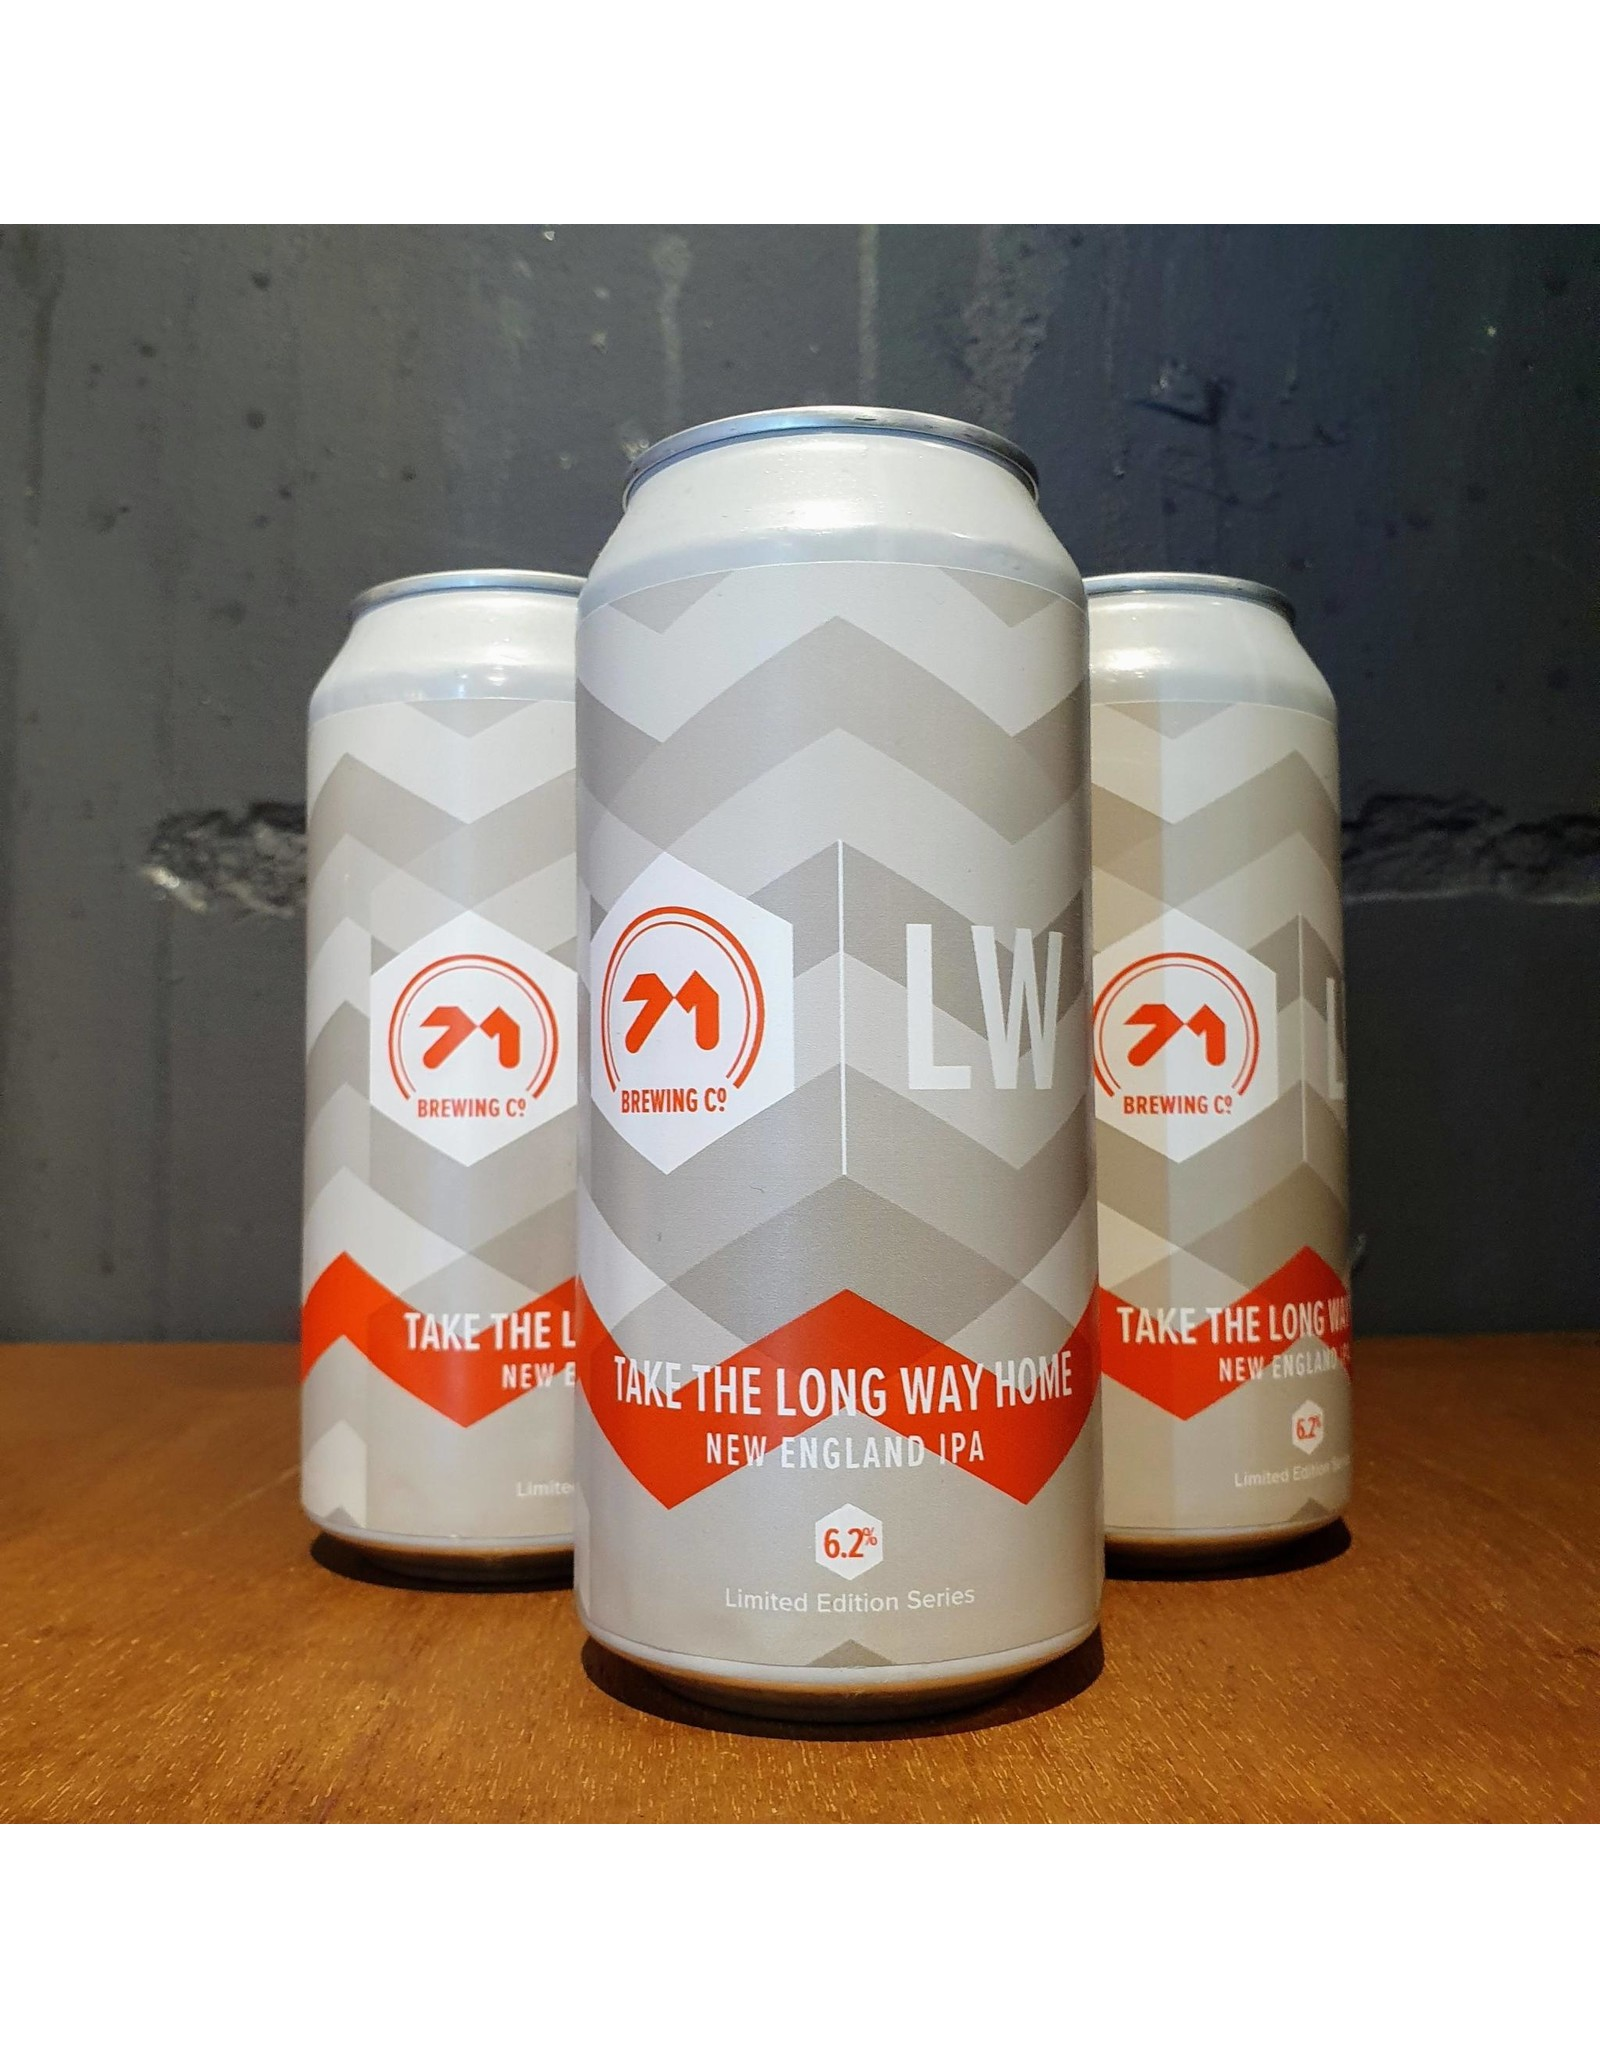 71 Brewing - Take The Long Way Home